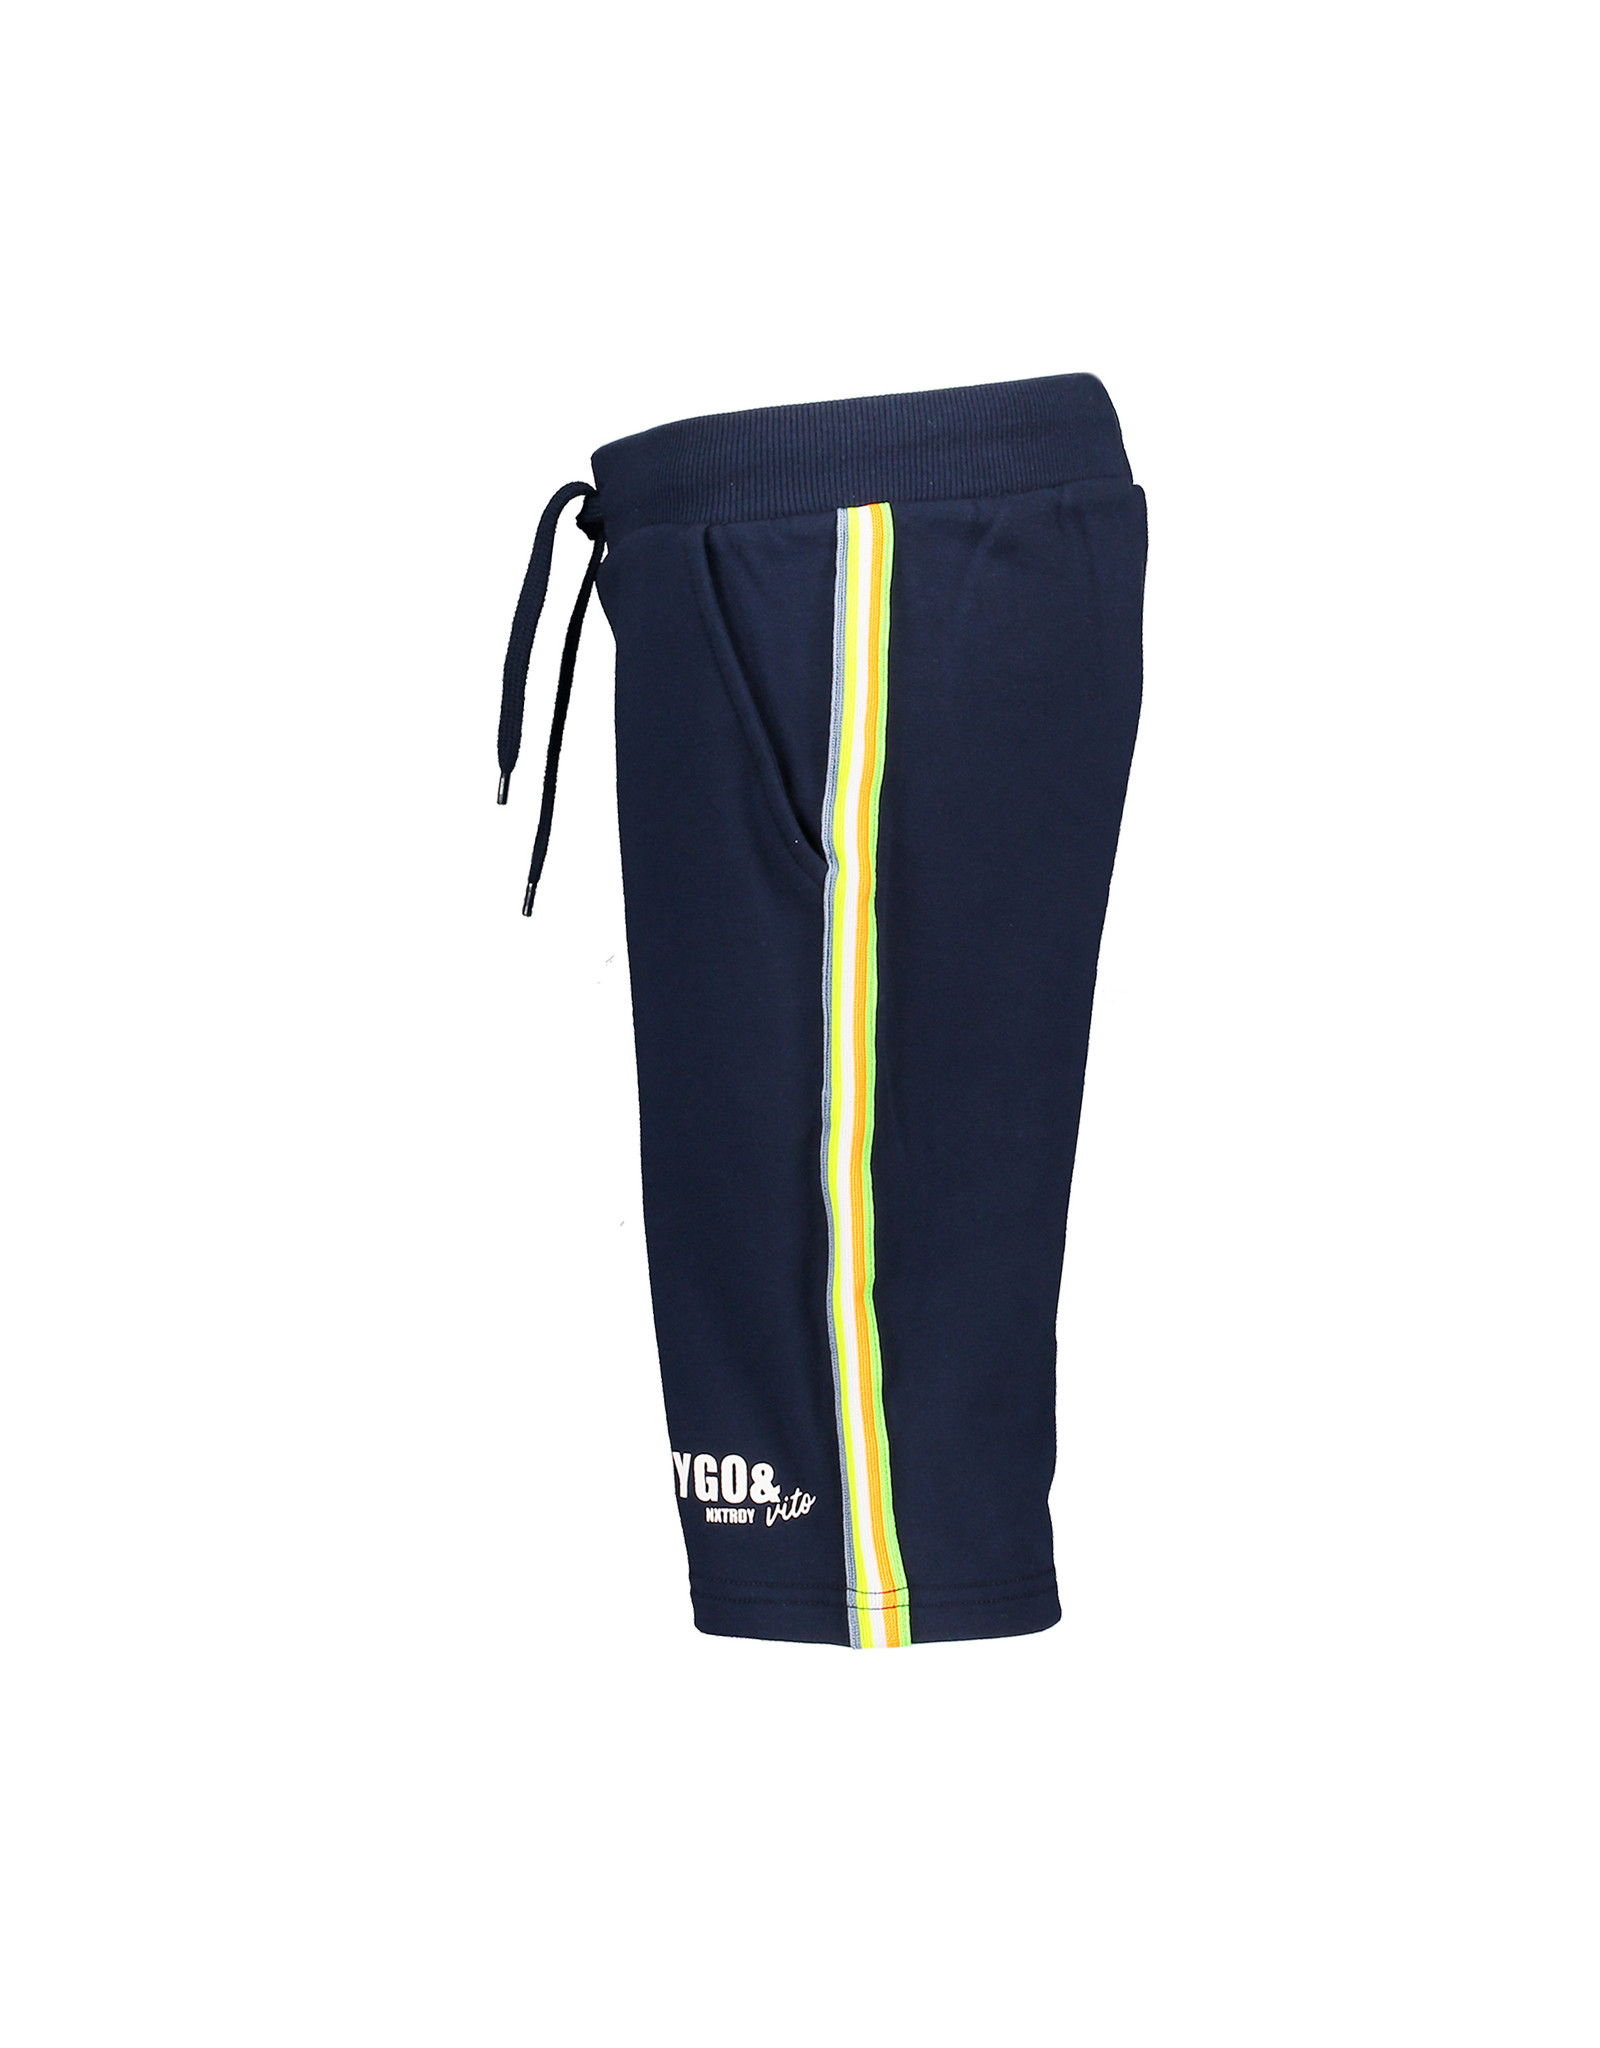 Tygo & Vito T&v jog short striped tape navy